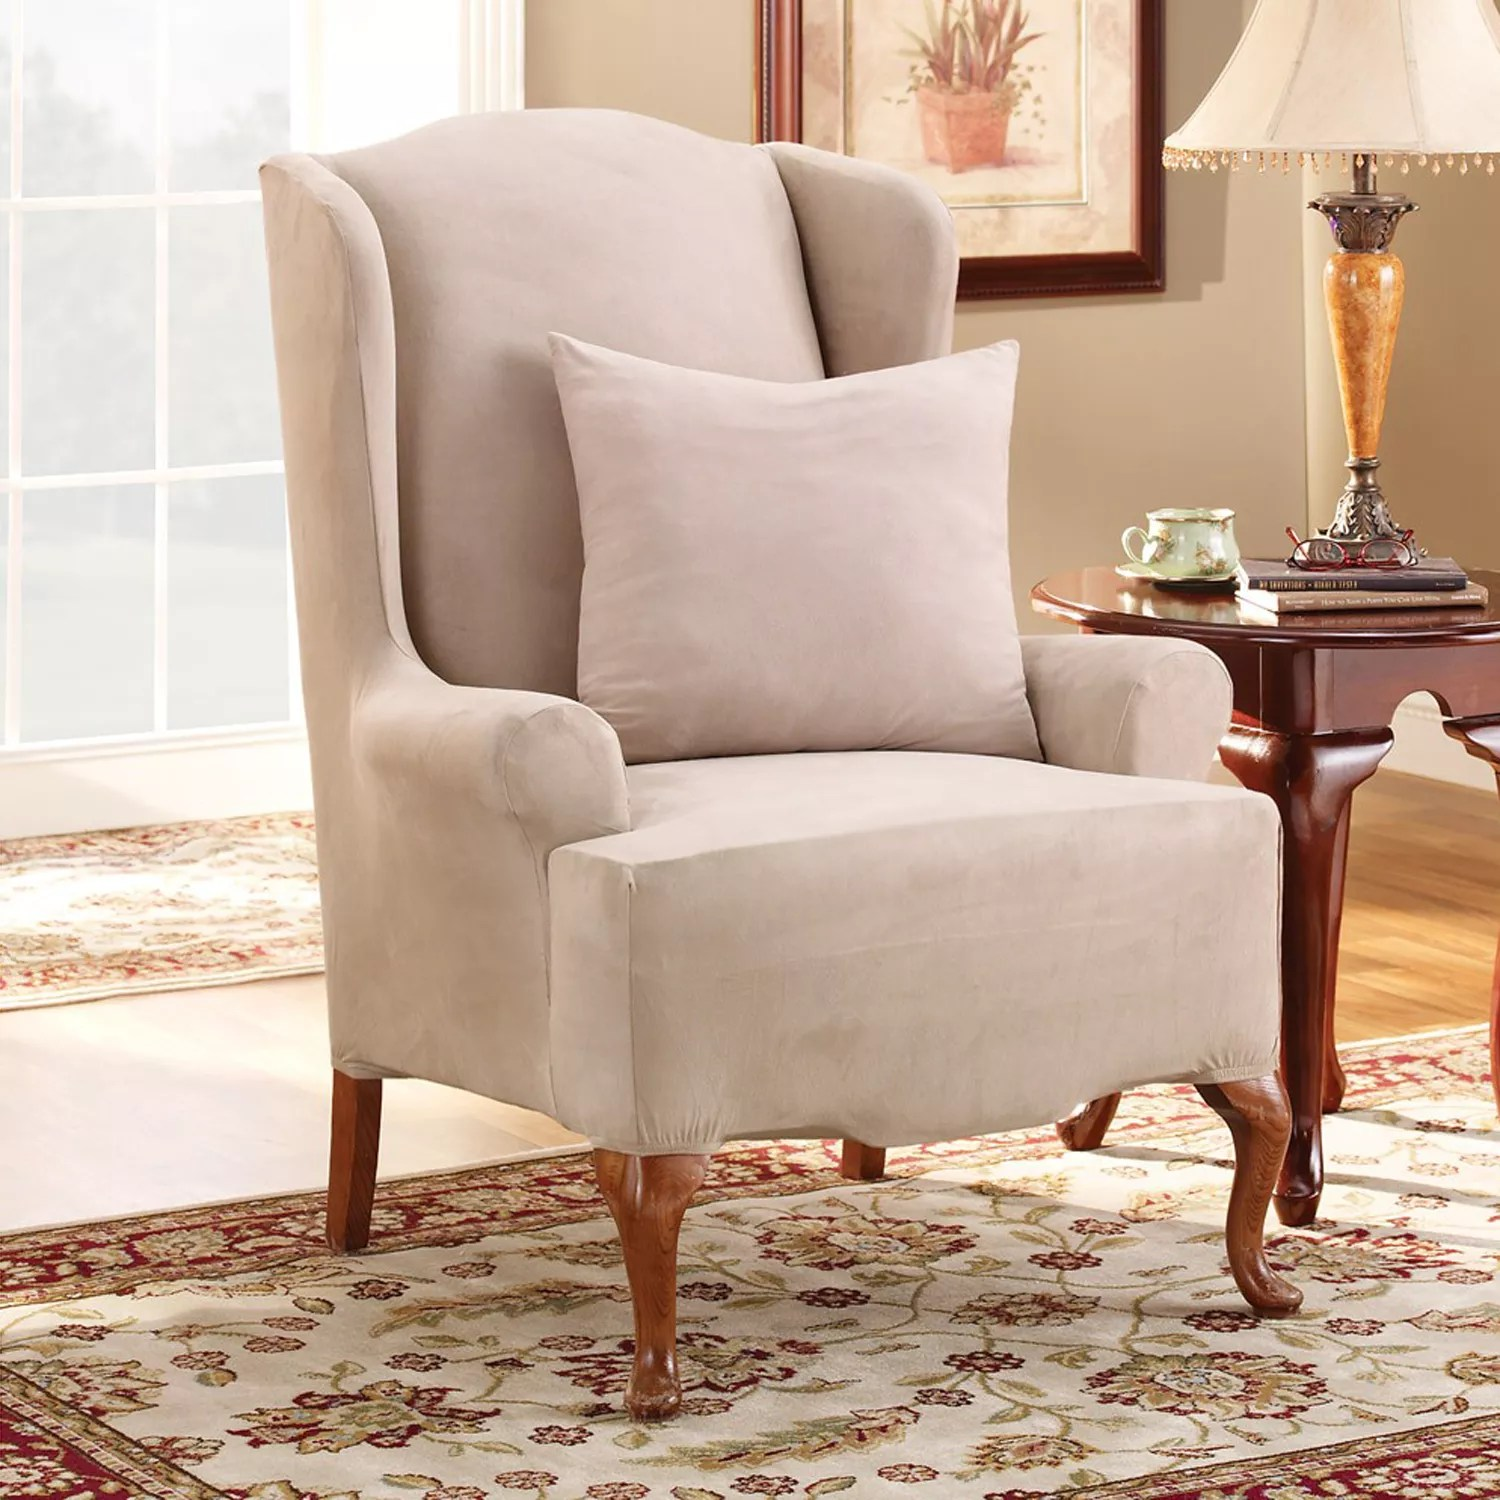 cotton dining chair covers australia white rocking wooden legs slipcovers kohl s sure fit stretch suede wing slipcover